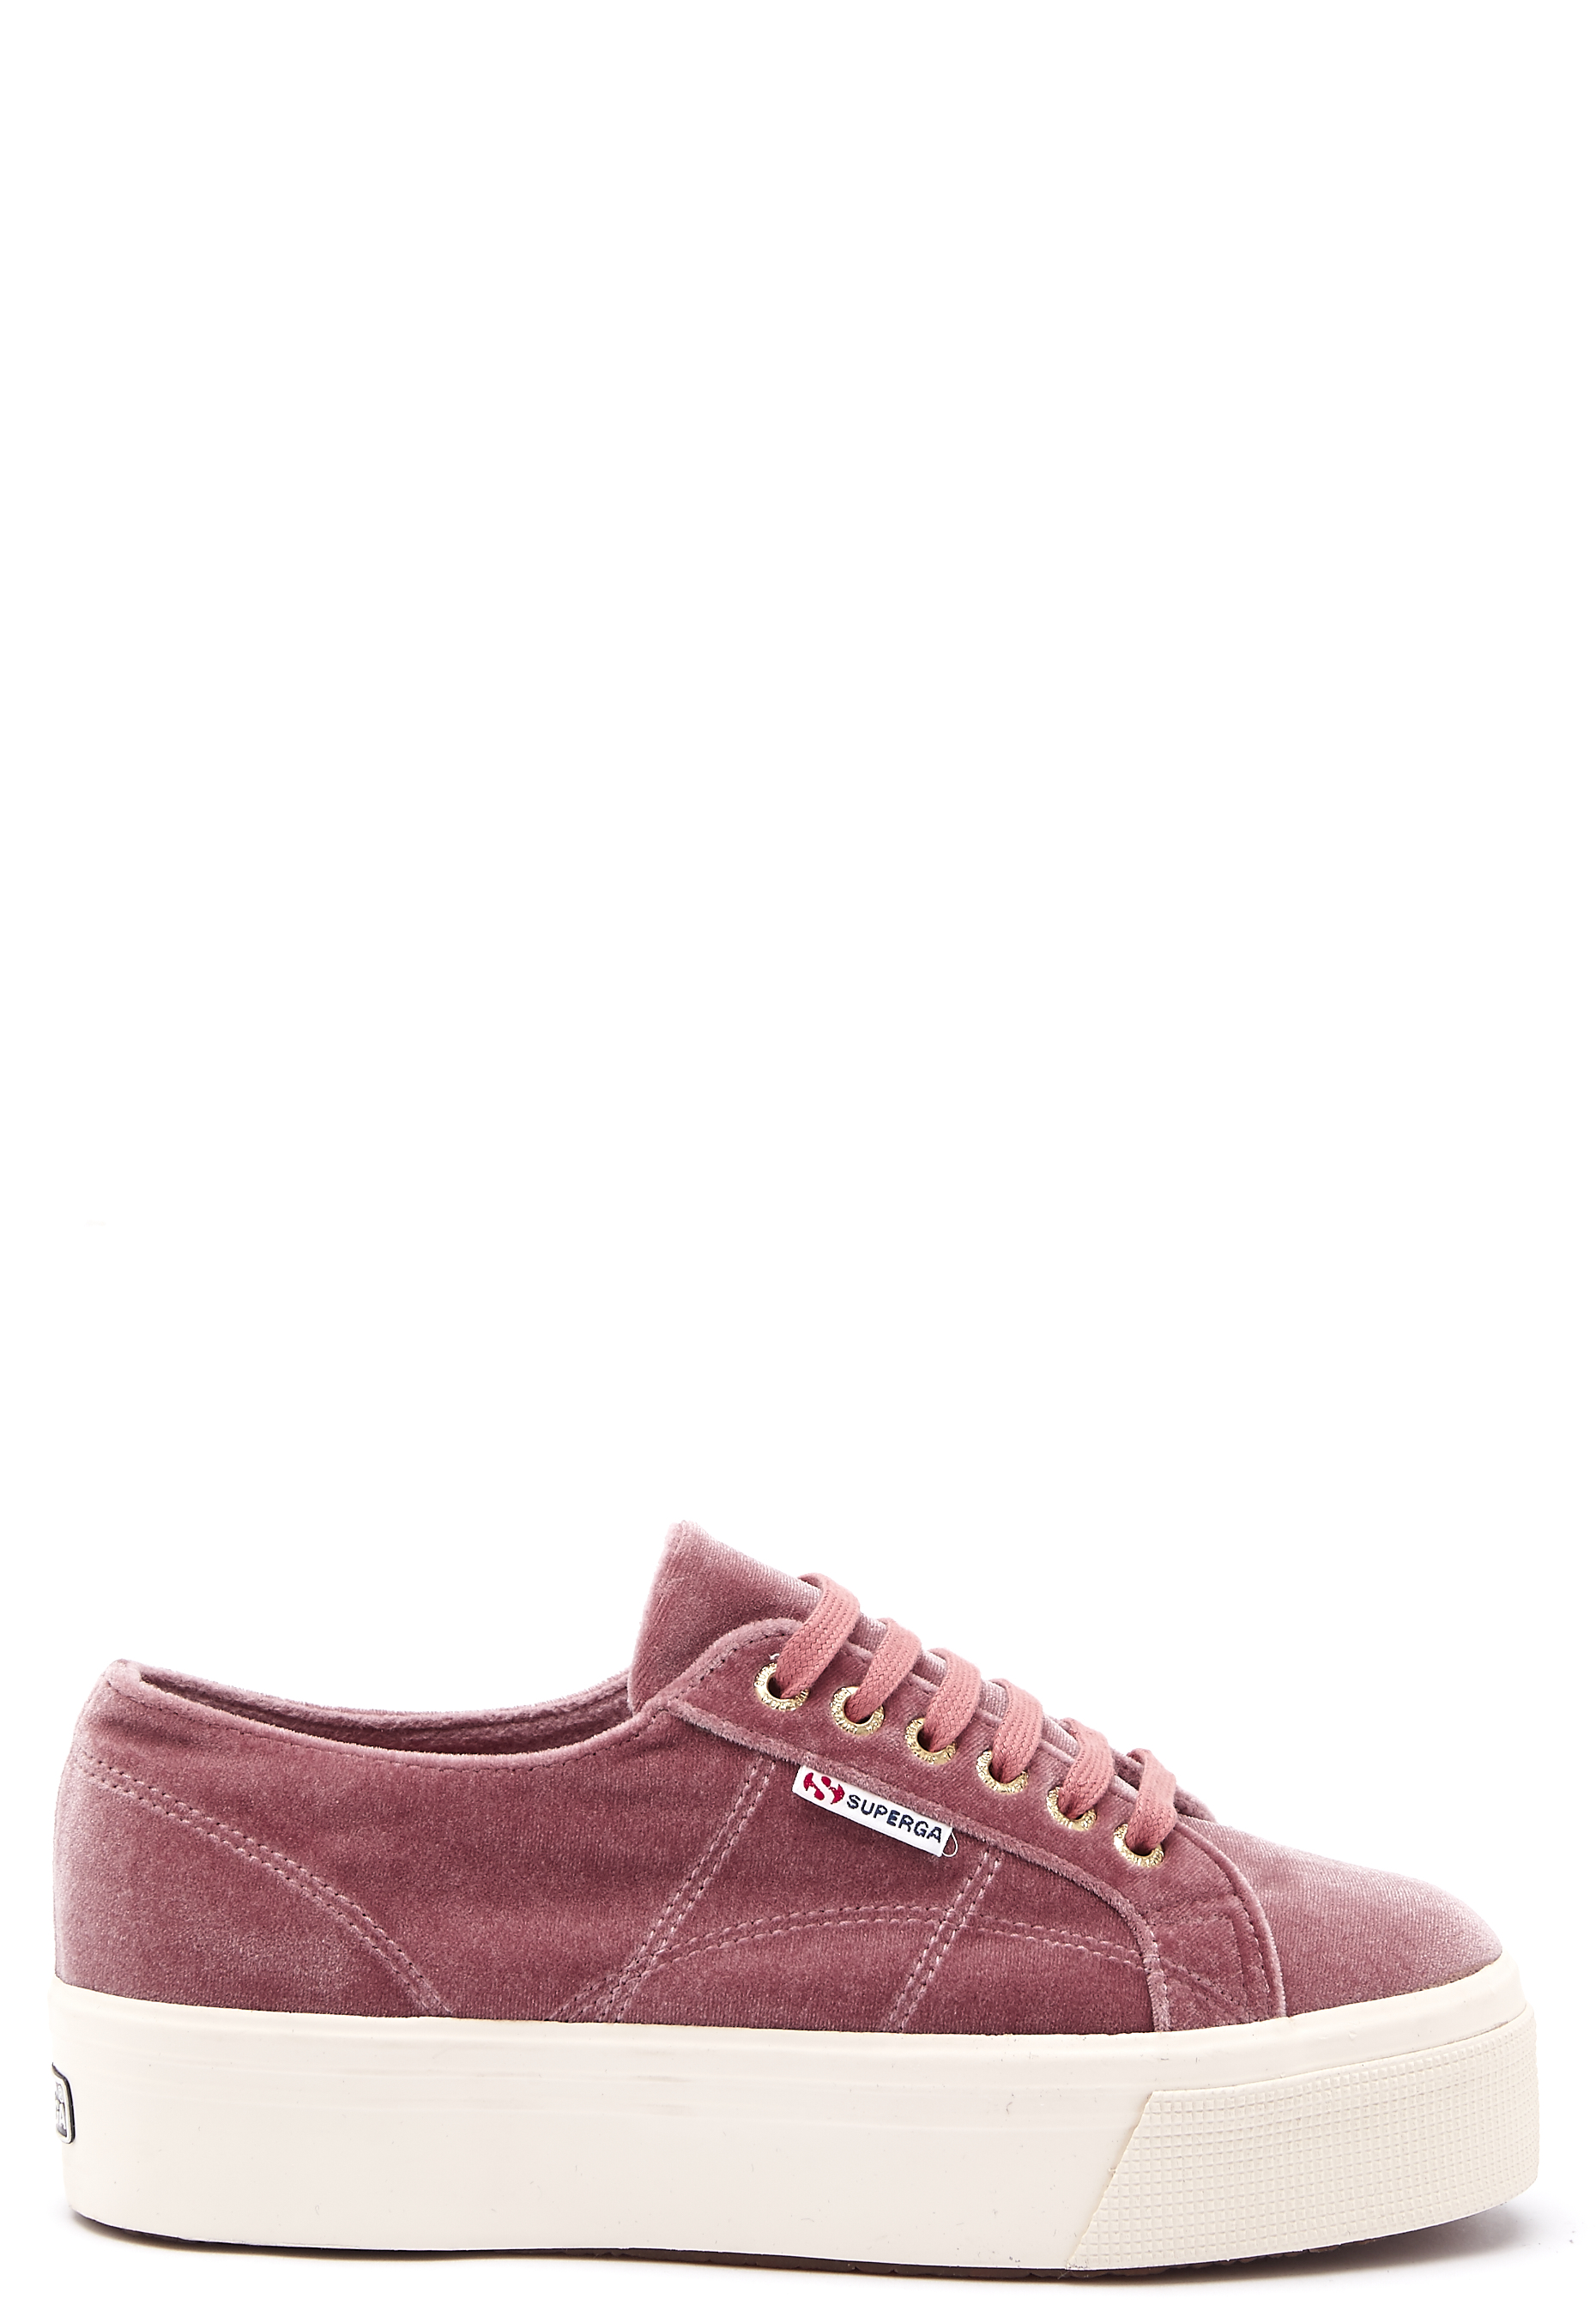 4e04cfa0b51 Superga Velvet Sneakers Pink Dusty Rose - Bubbleroom